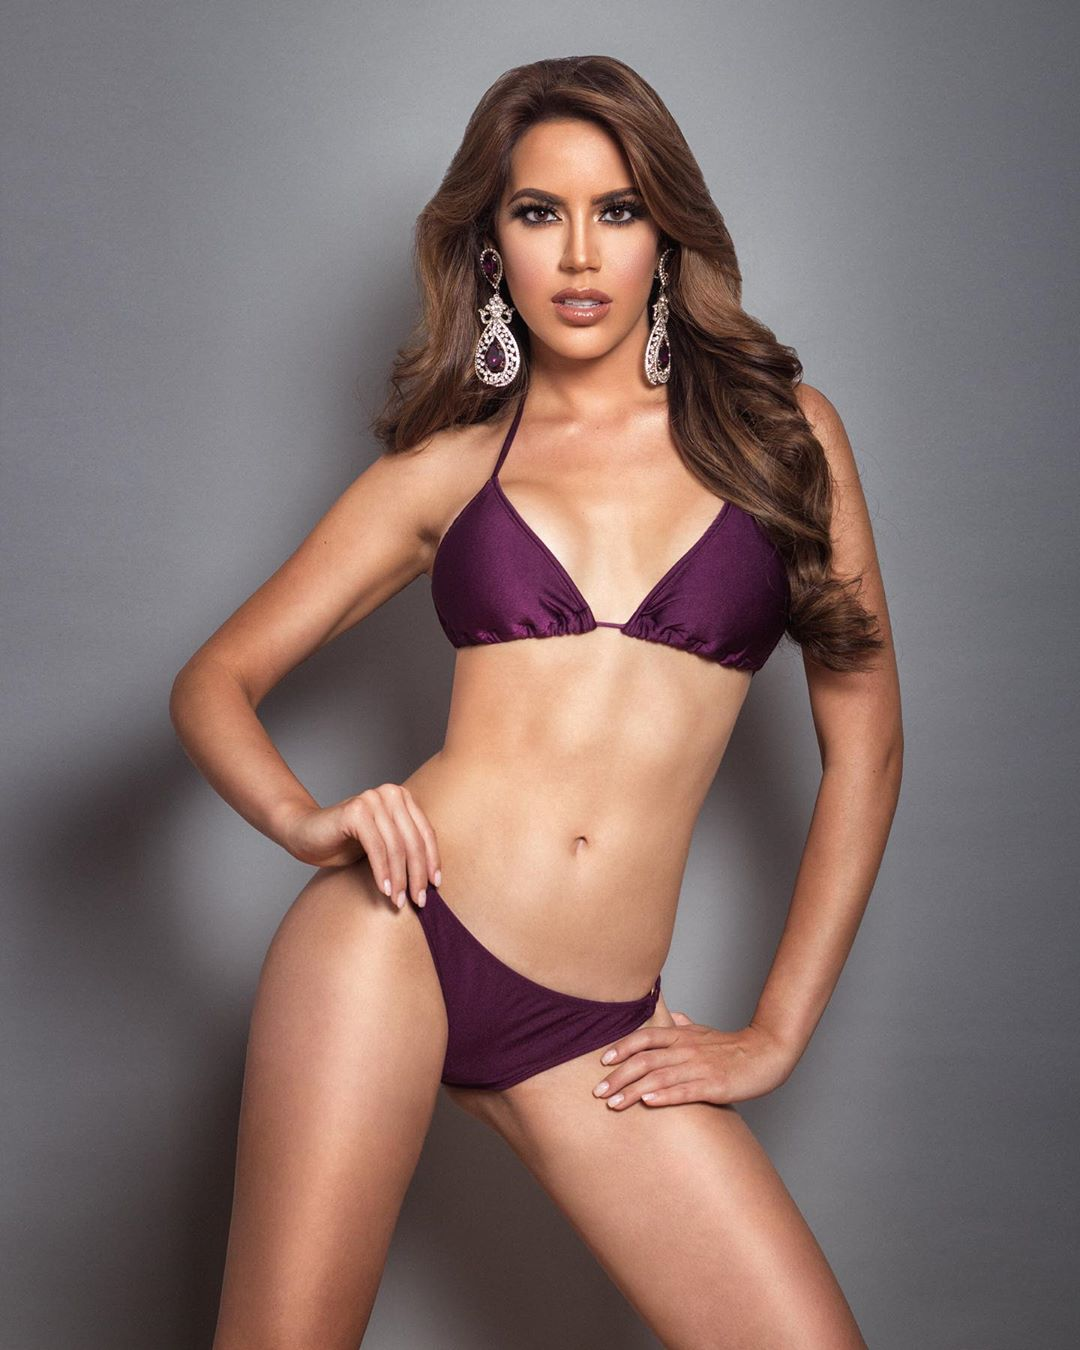 sonia hernandez, top 20 de miss earth 2019. - Página 4 69287410